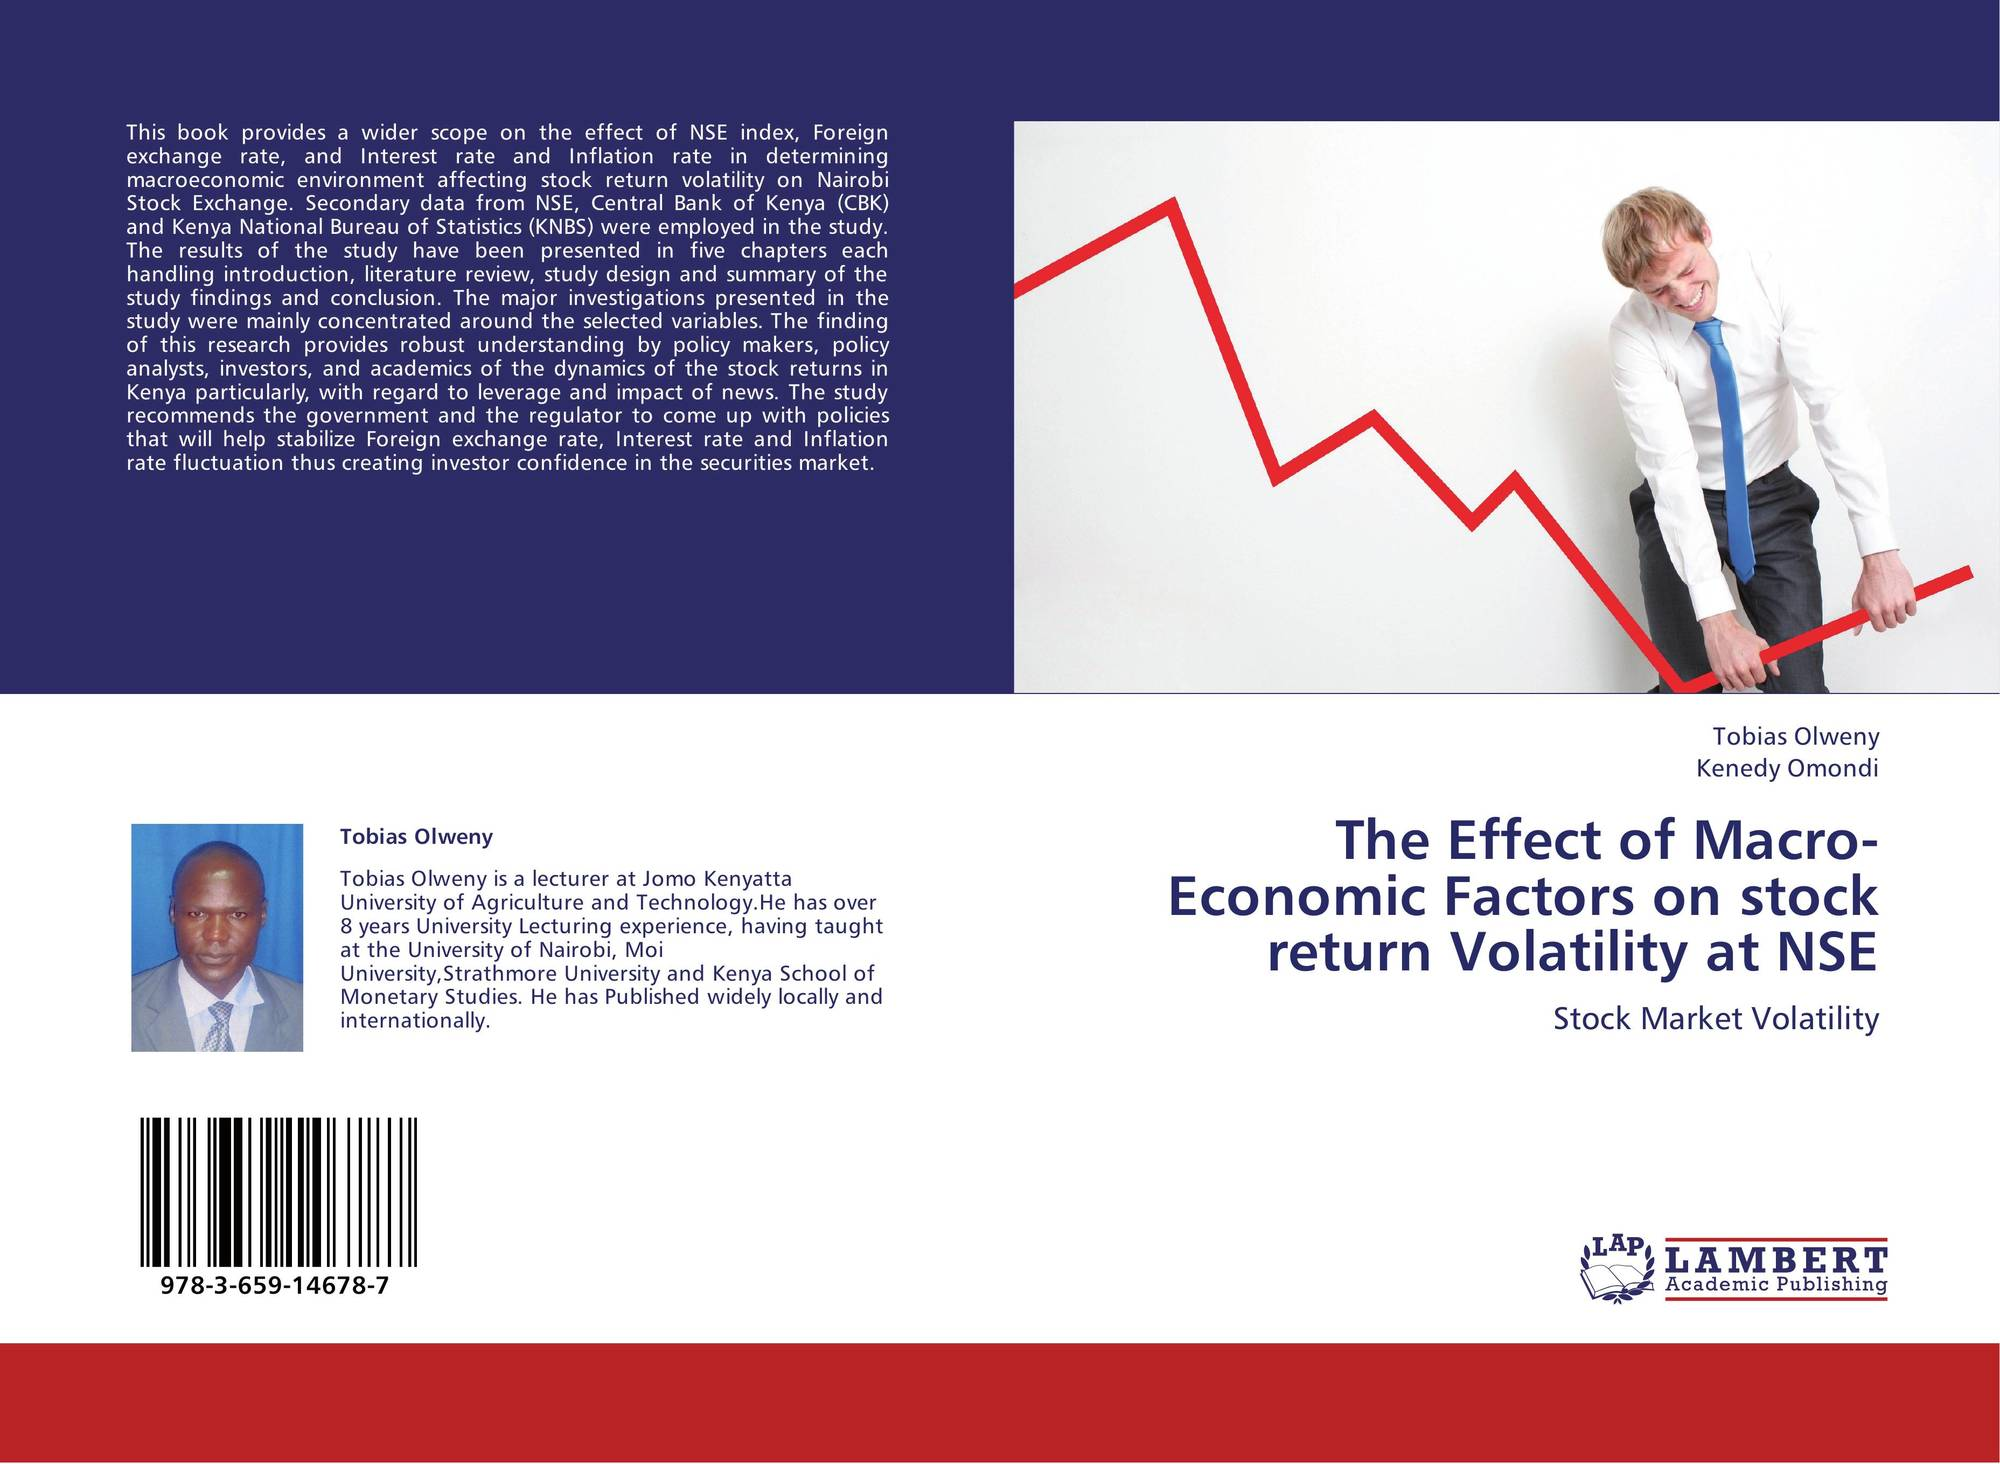 effects of economic factors on stock Economic trends in foreign markets can have an effect on the stock market in the united states, according to the article titled riding the economic roller coaster published in inc magazine.